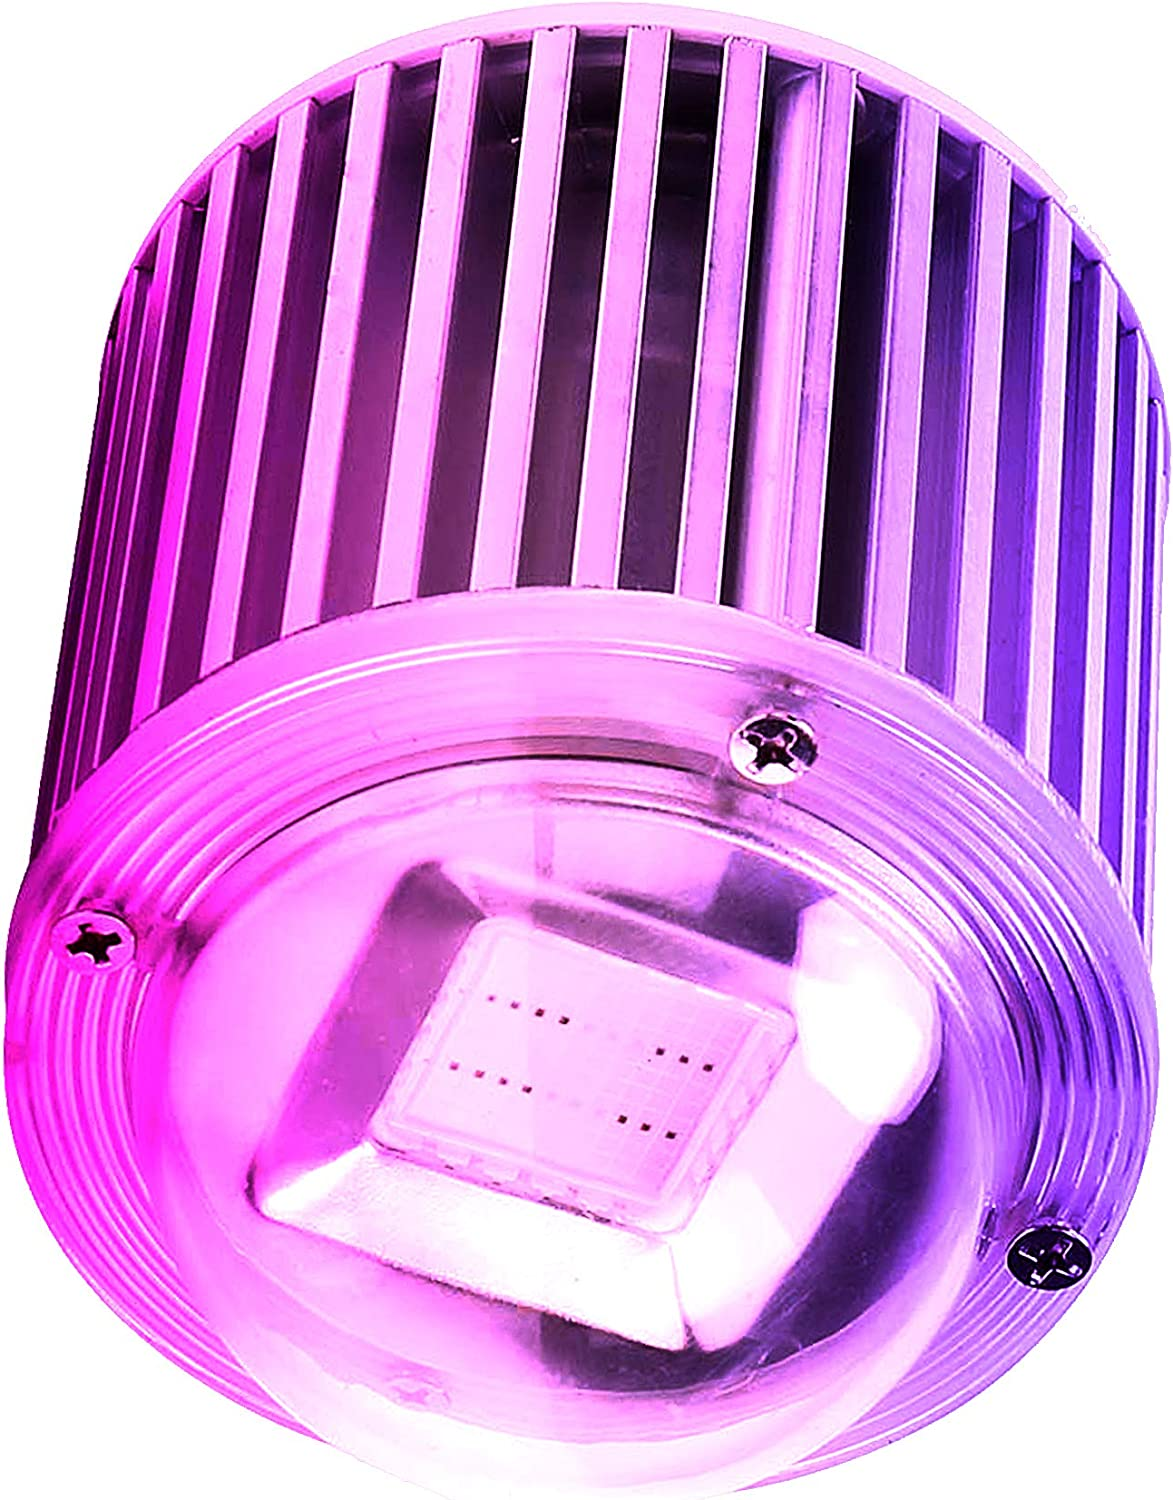 ZOTRON Waterproof Real Grow Light 60W, Newest Technology LED Grow Light Bulbs for Greenhouse, Indoor Plants and Hydroponic Garden, Industrial Grade Growing Lamps